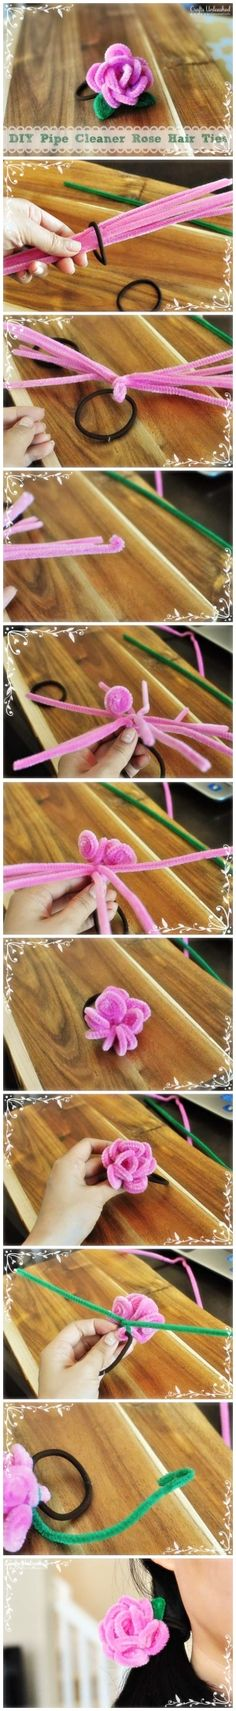 Pipe Cleaner Rose Hair Ties by juliana.denver.58